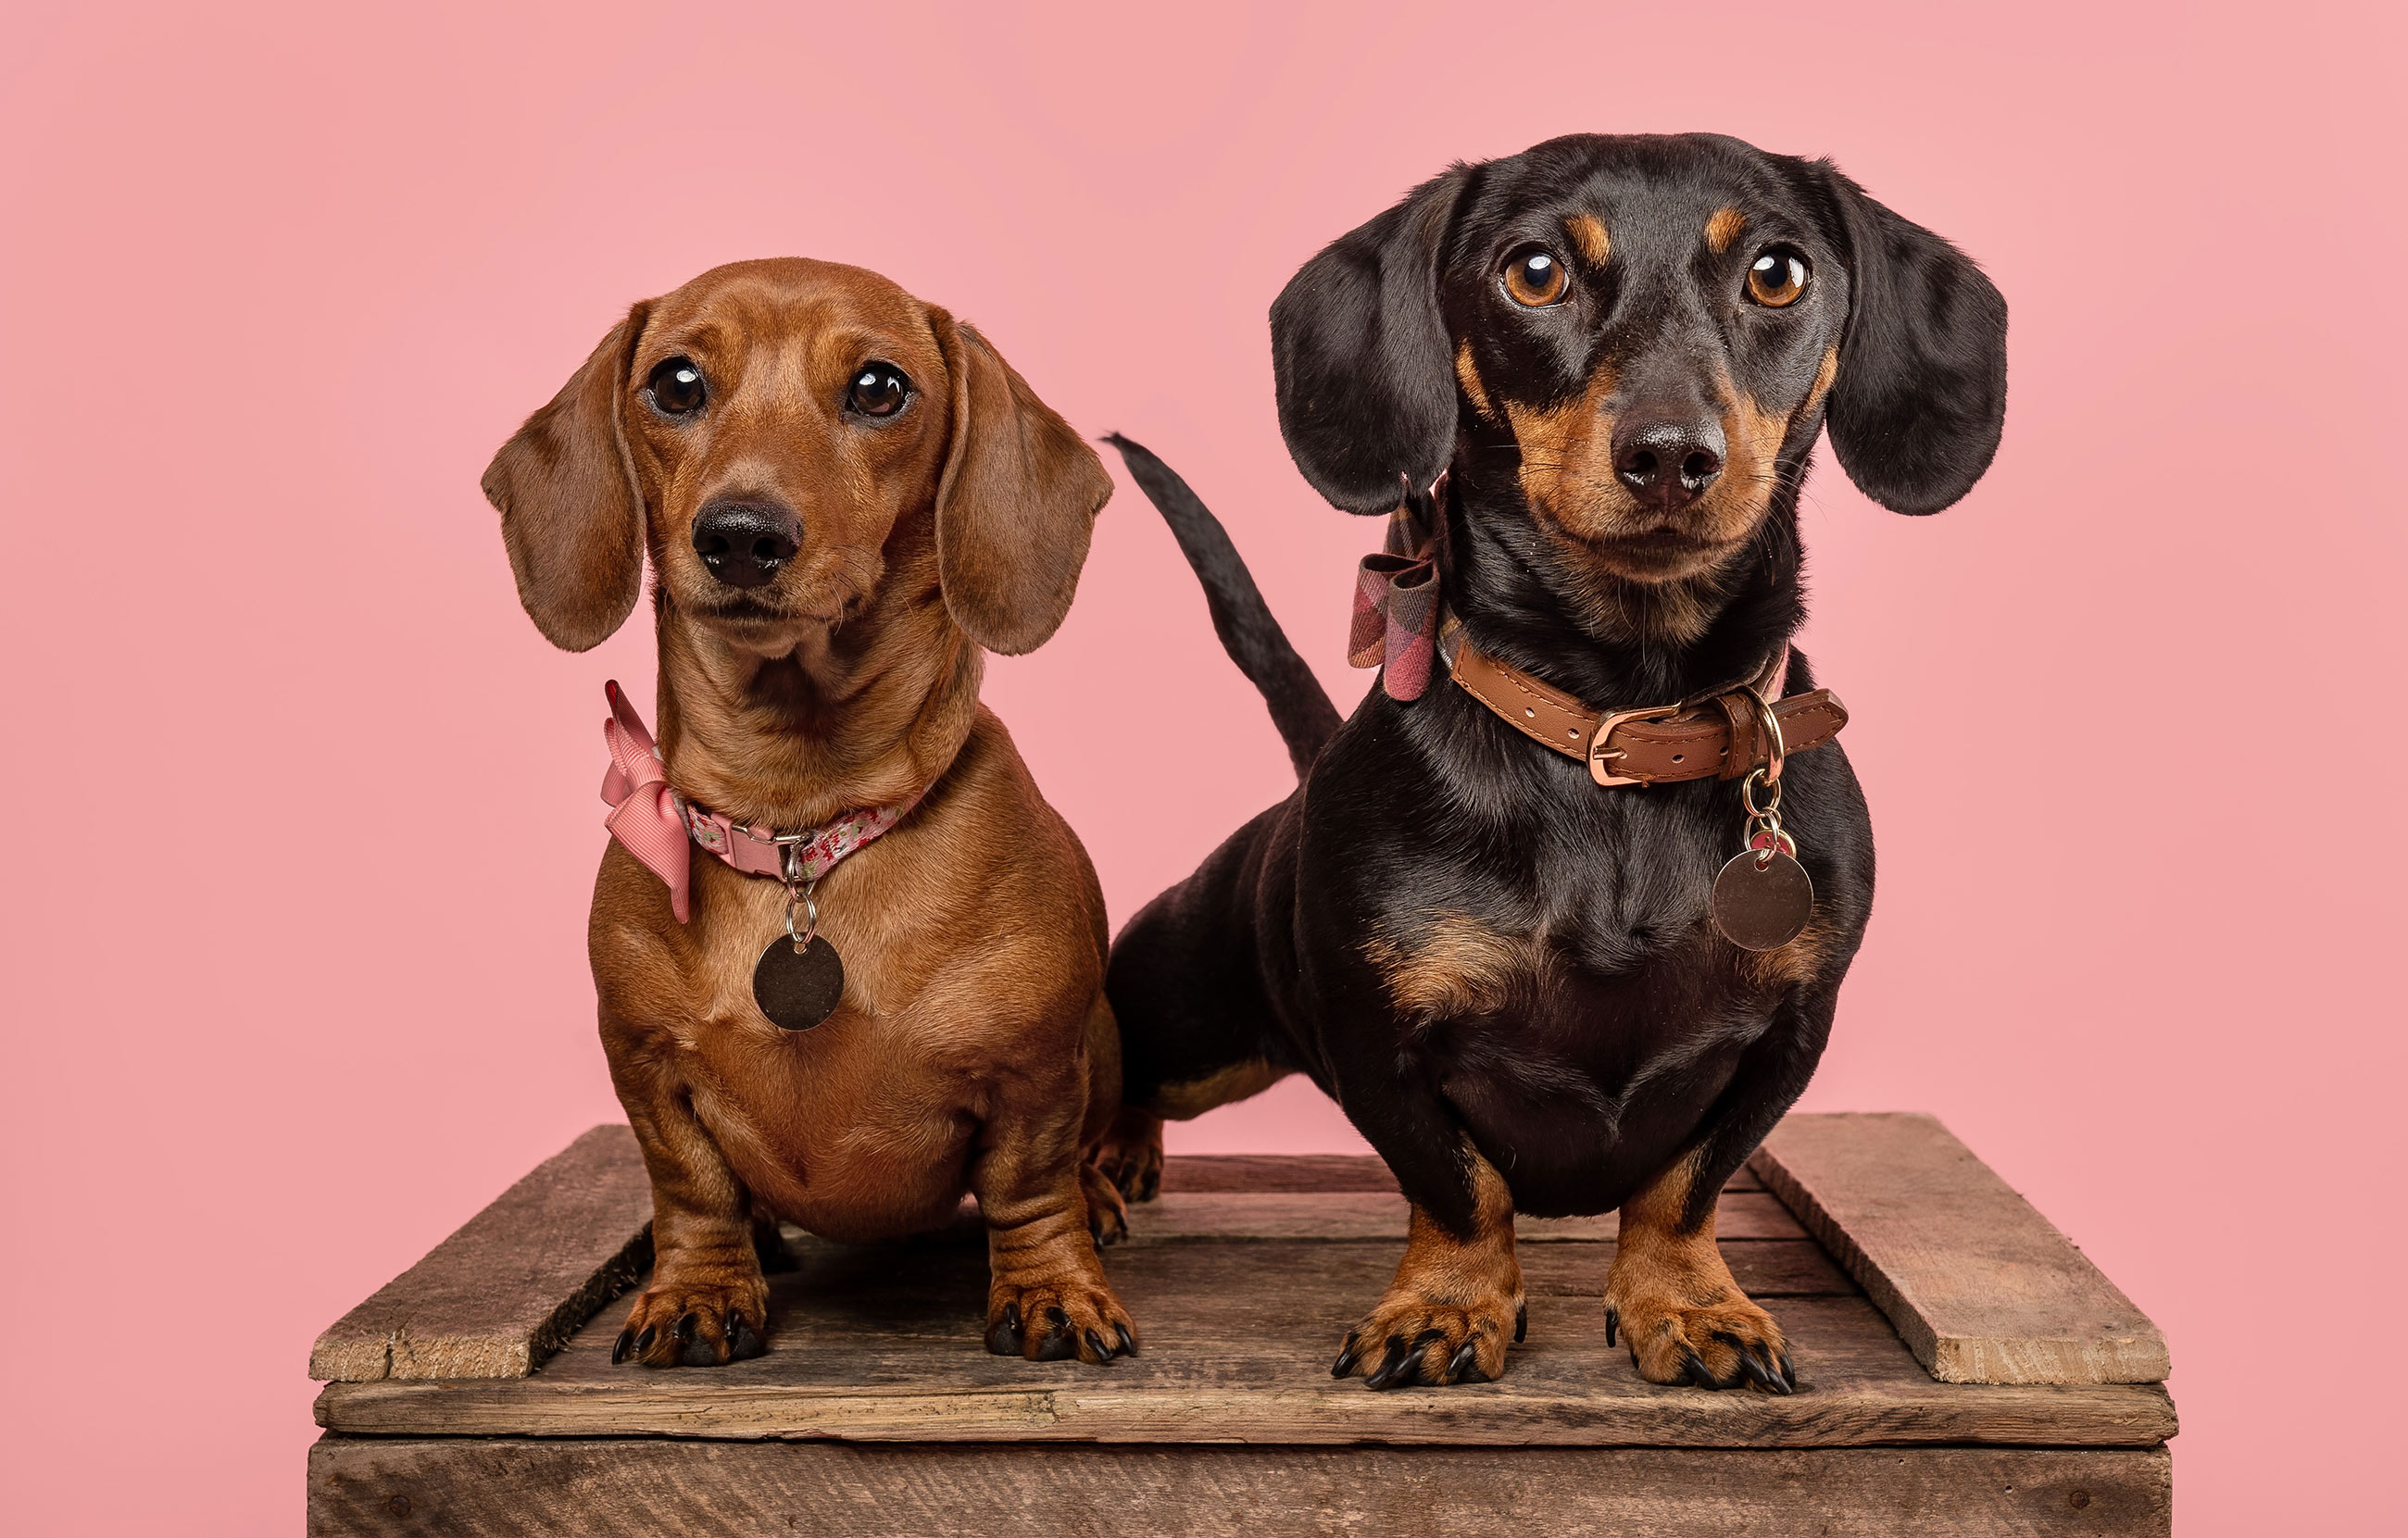 Contemporary Pet Photography in Falkirk, Scotland | Photo shows two dachshunds in Studio